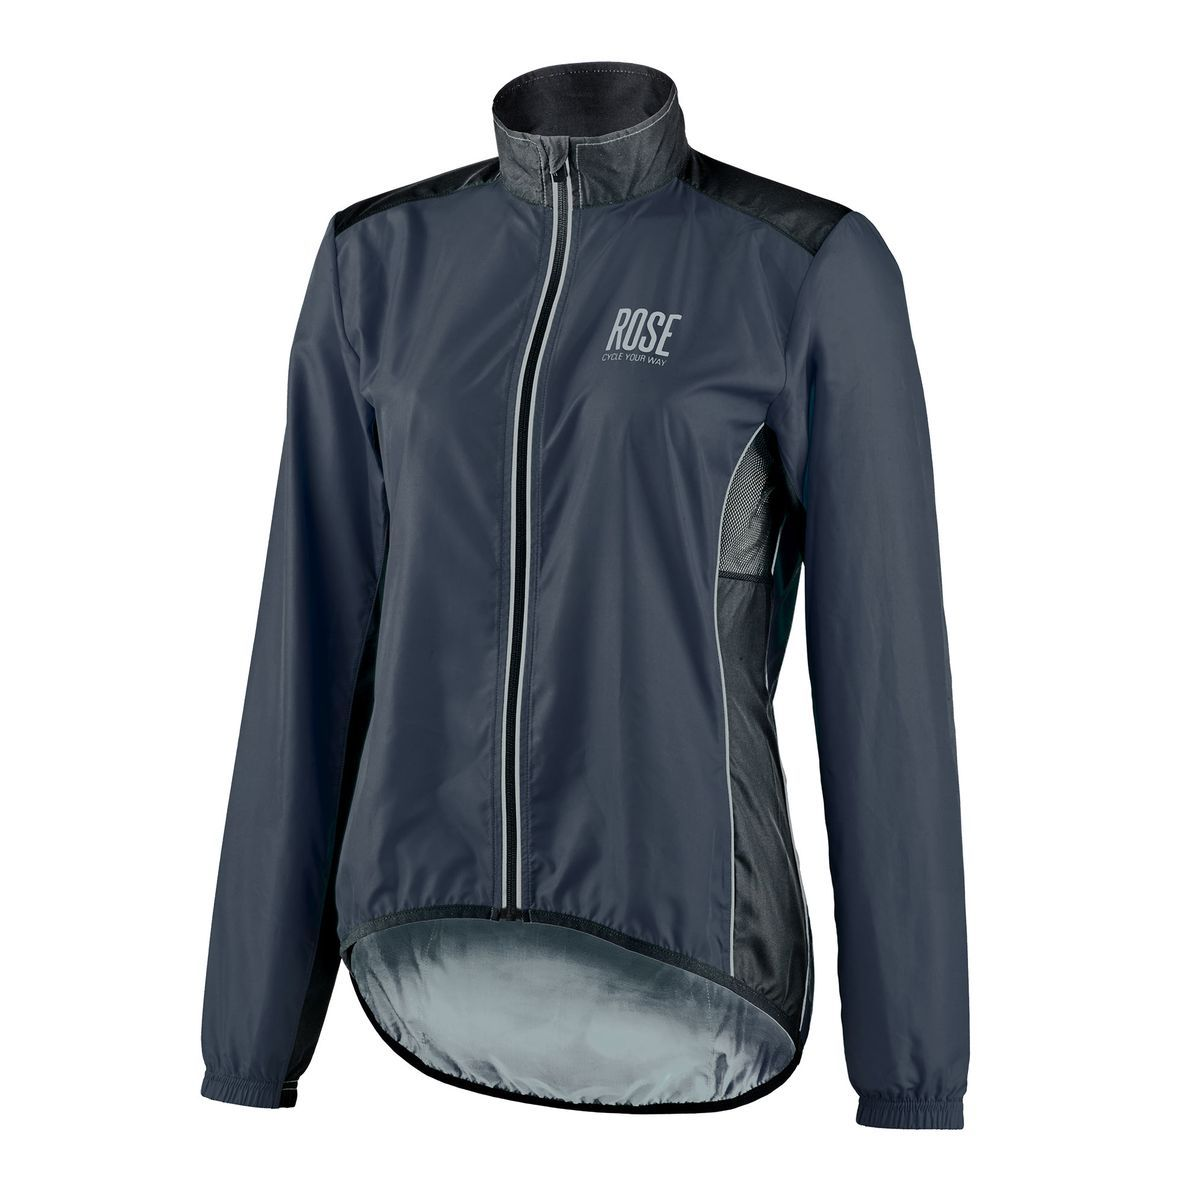 FIBRE women's cycling jacket